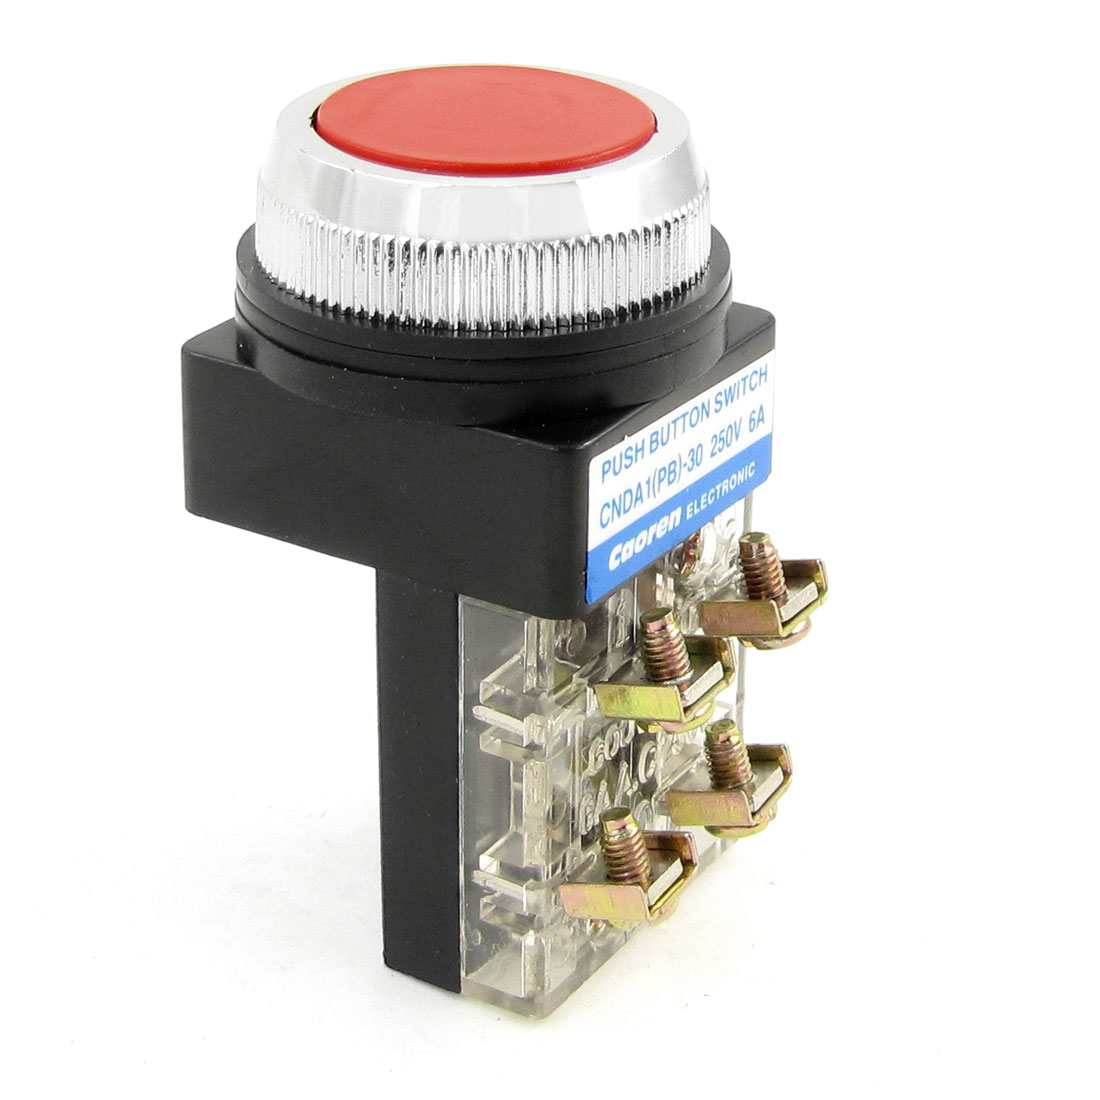 Panel Mounted Momentary Red Flat Pushbutton Switch DPST 250VAC 6A DPST